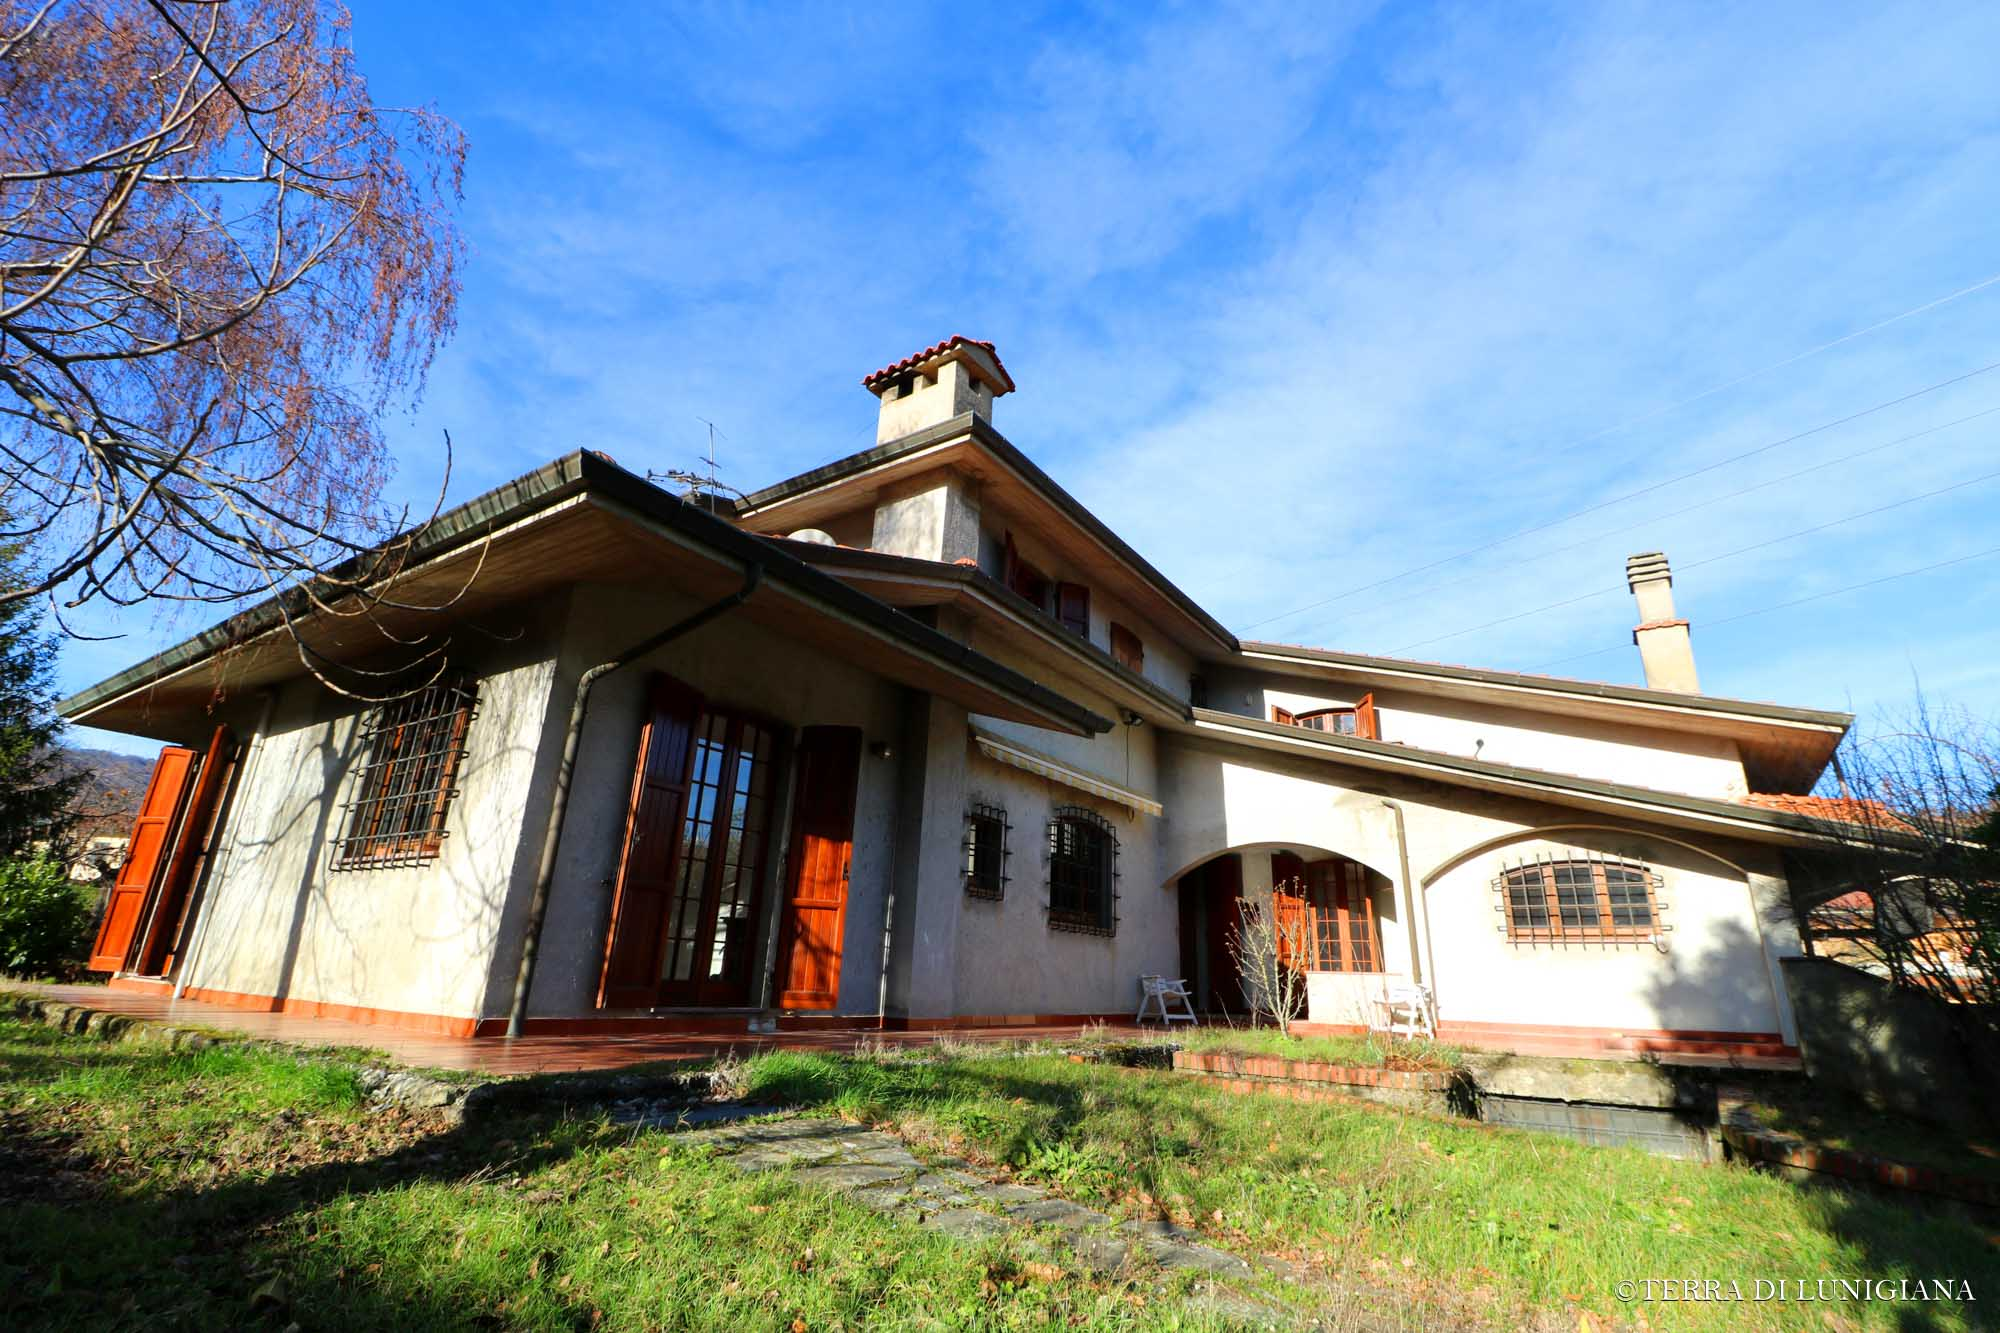 VILLA FEDELE – Large Family Villa With Park